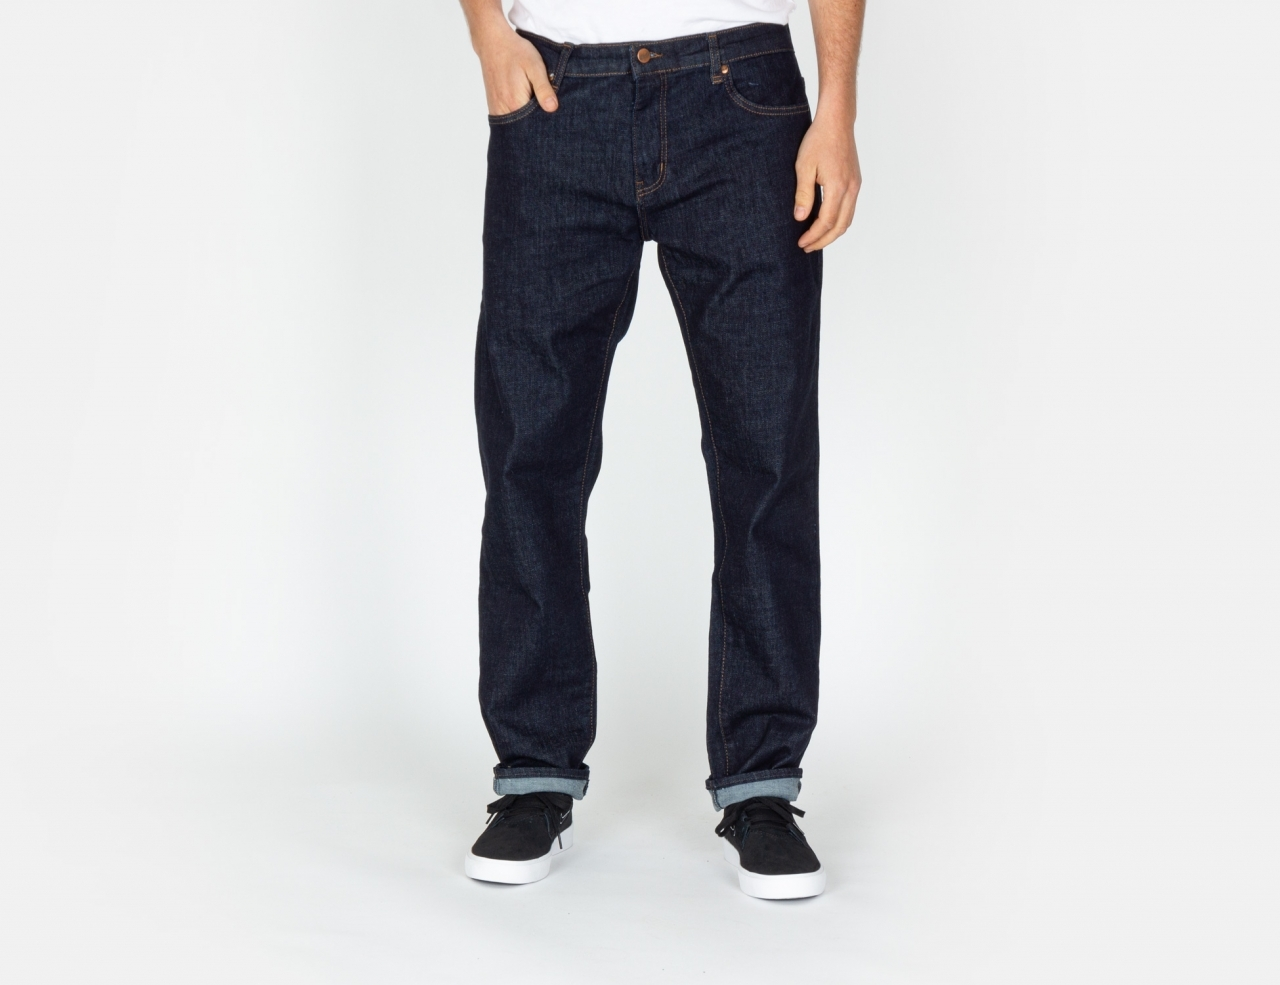 Reell Jeans Barfly Pant - Ravv Blue Rinse